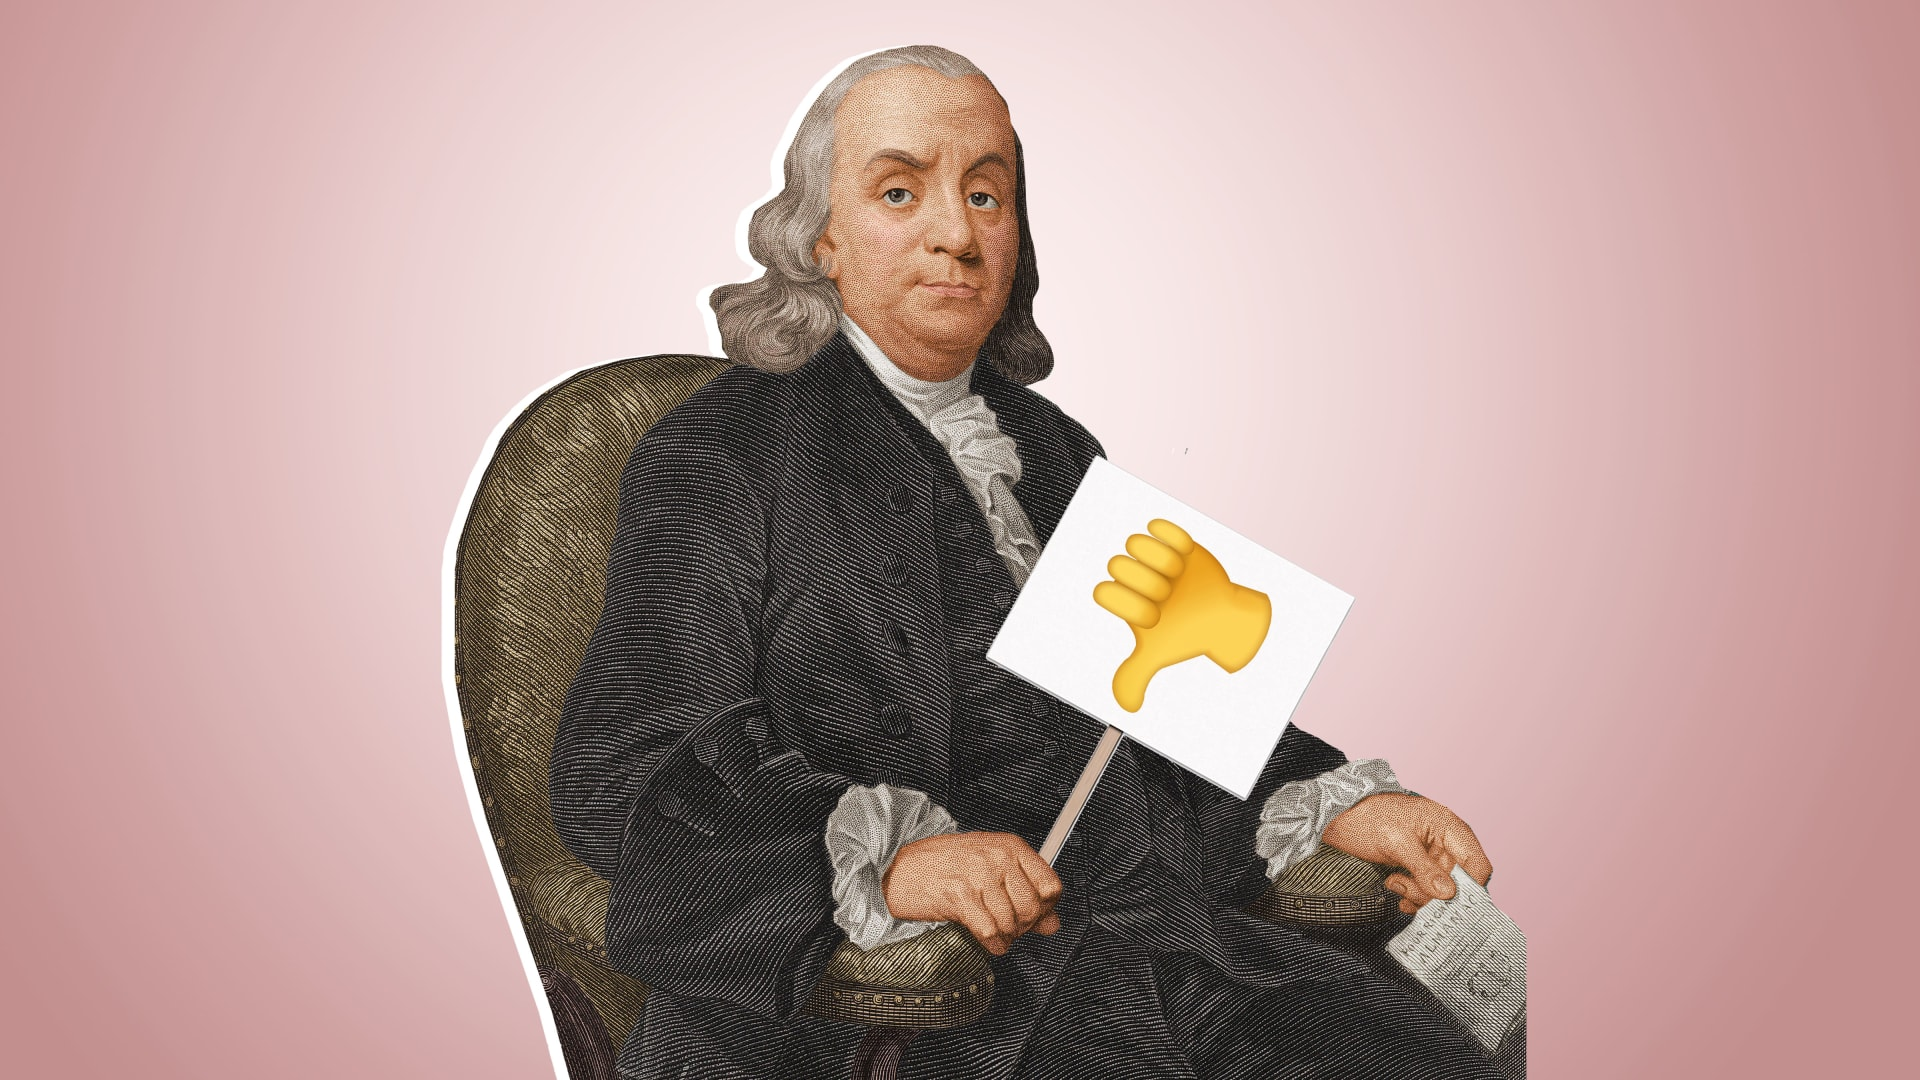 The 5 Biggest Mistakes That Make You Unlikeable, According to Ben Franklin